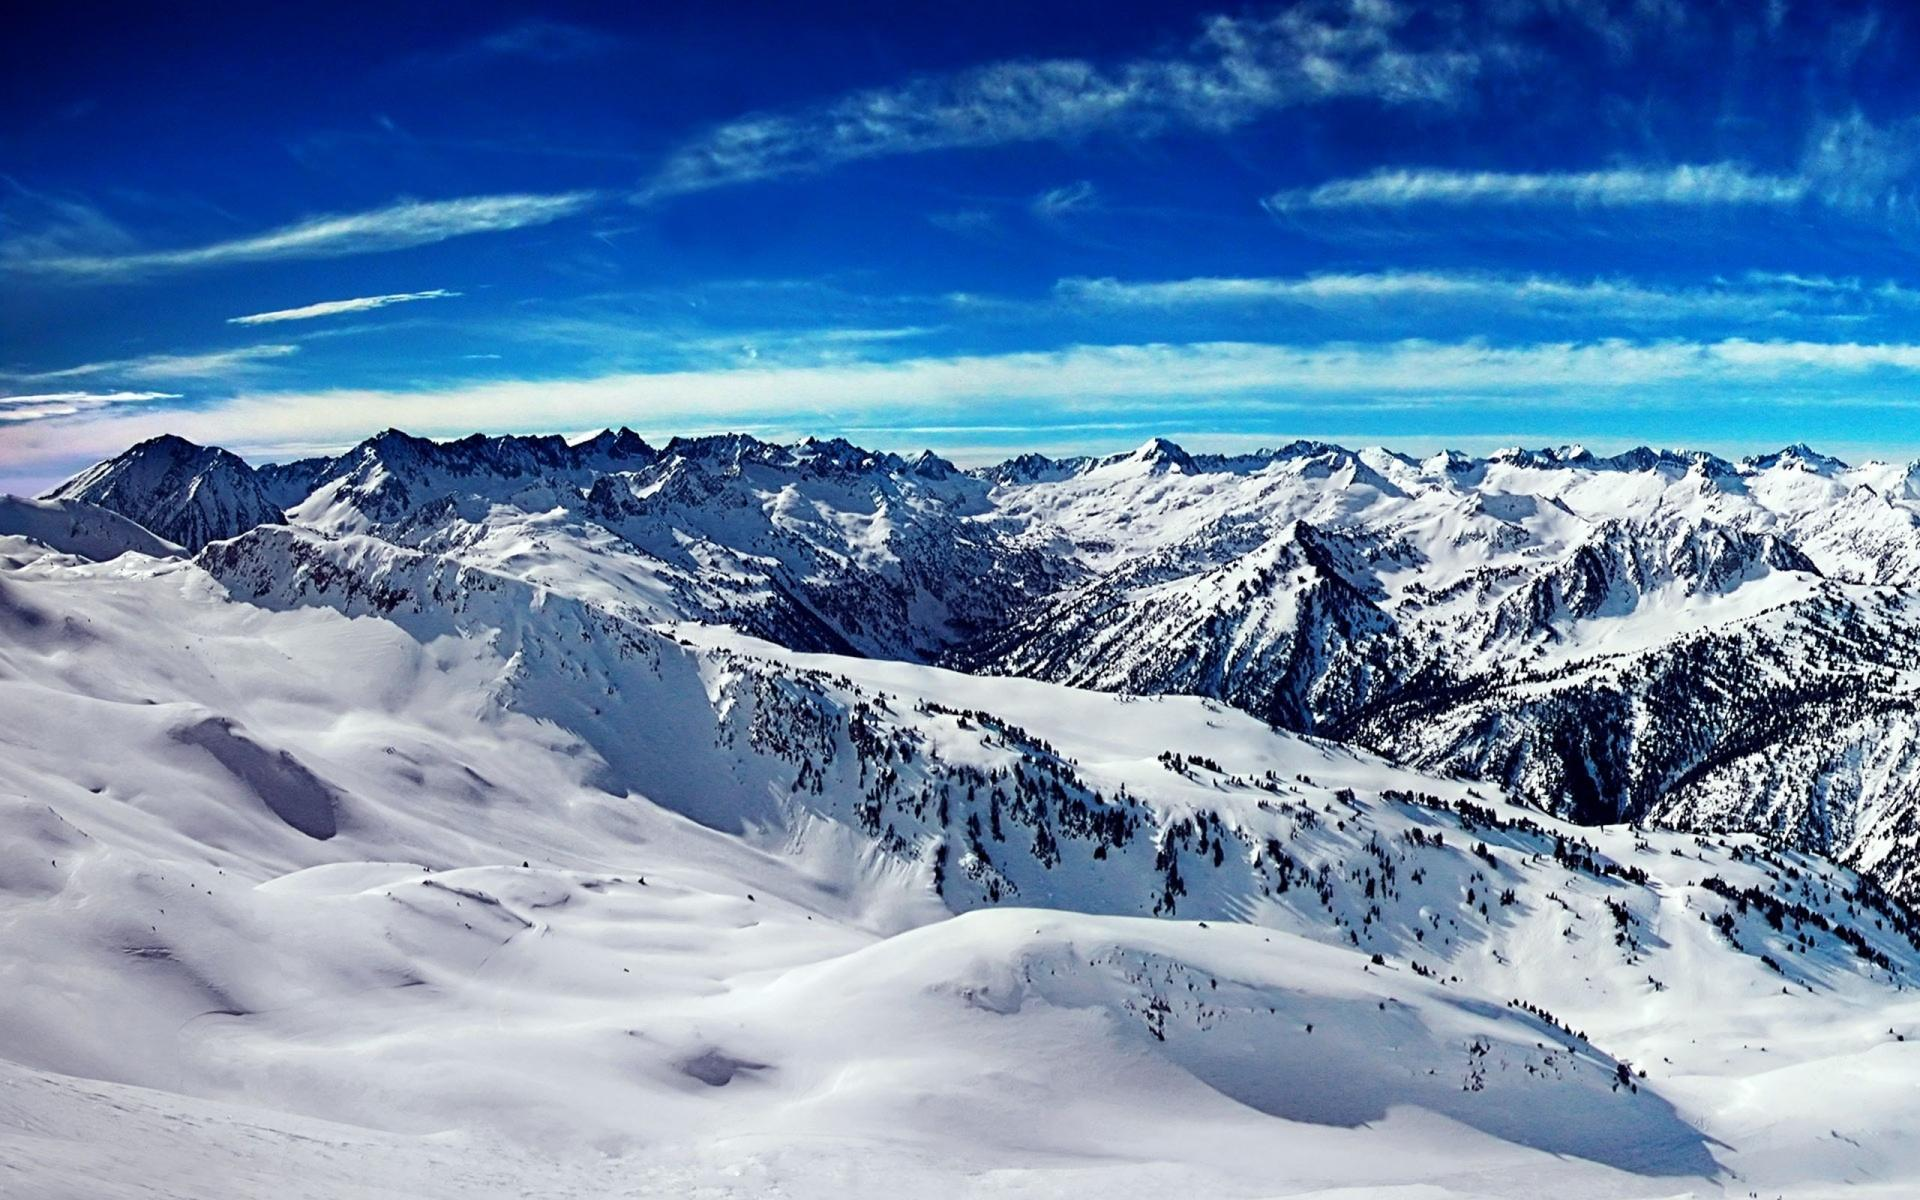 Cold Snowy Mountainscape Wallpaper Details and Download Free